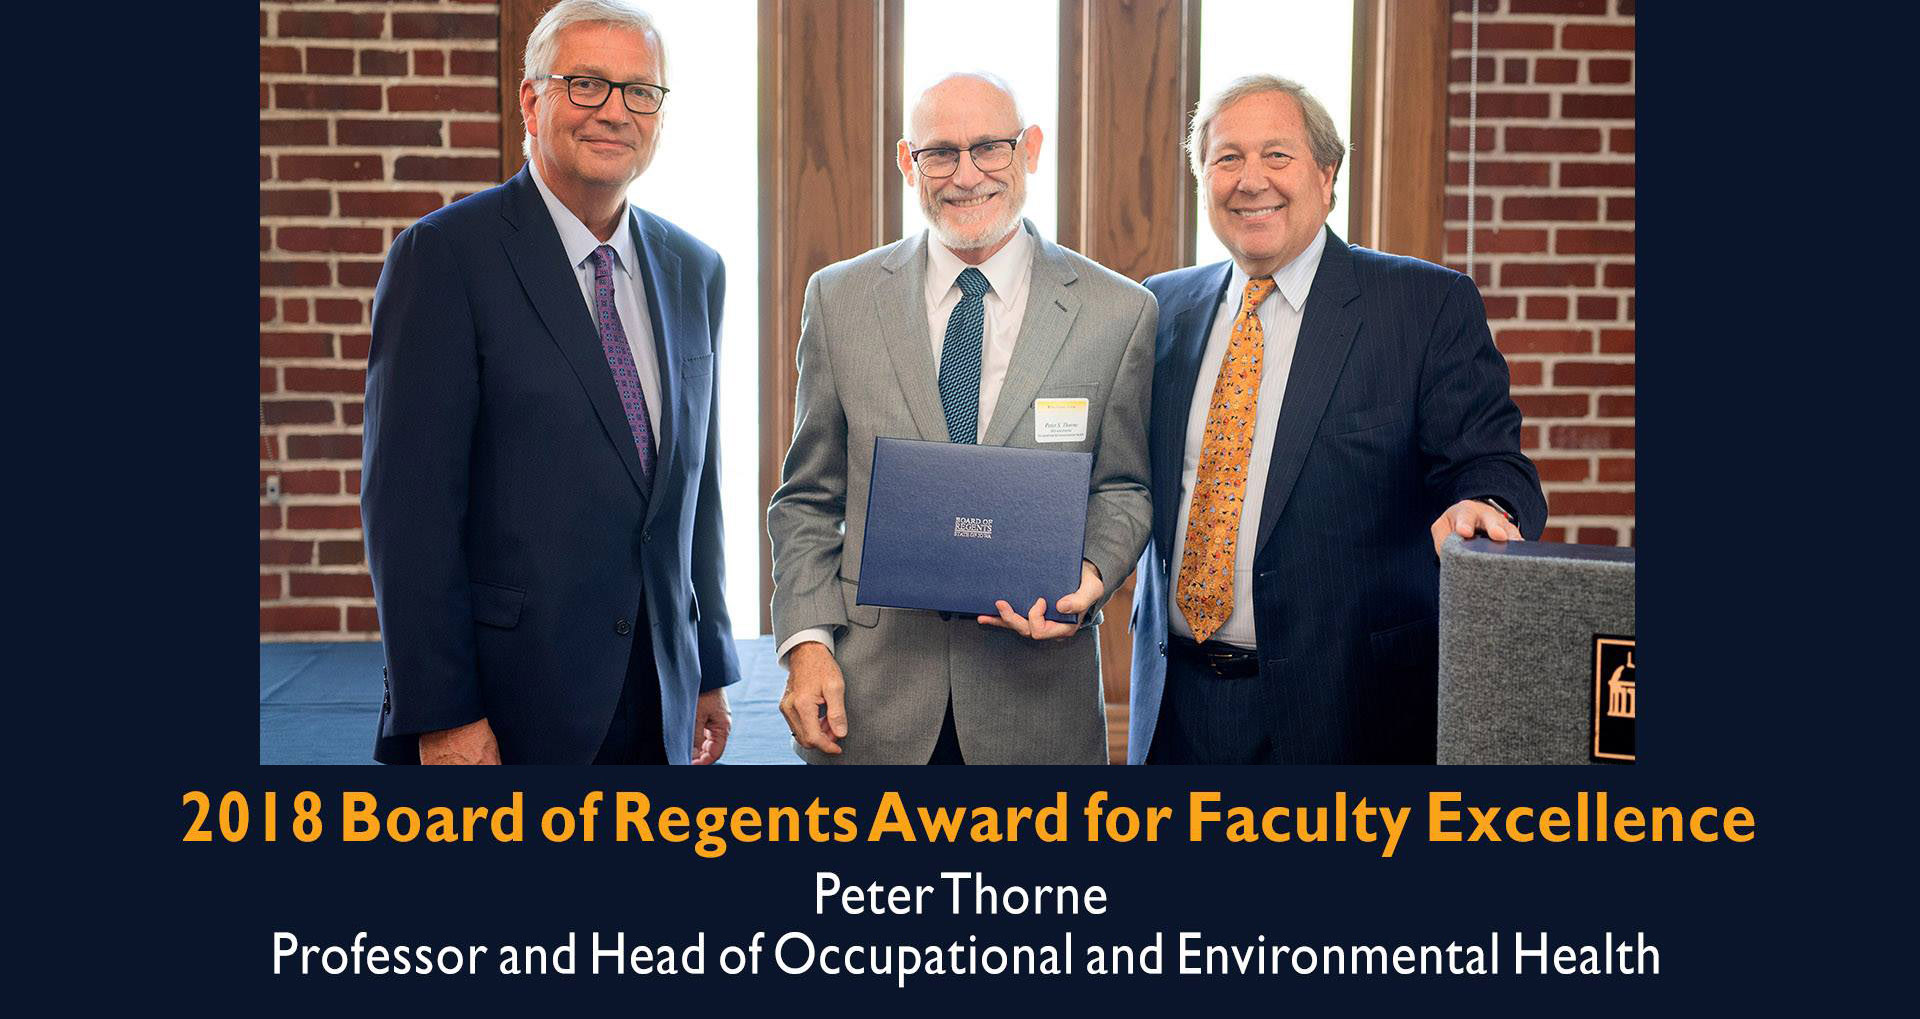 Peter Thorne 2018 Board of Regents Award for Faculty Excellence